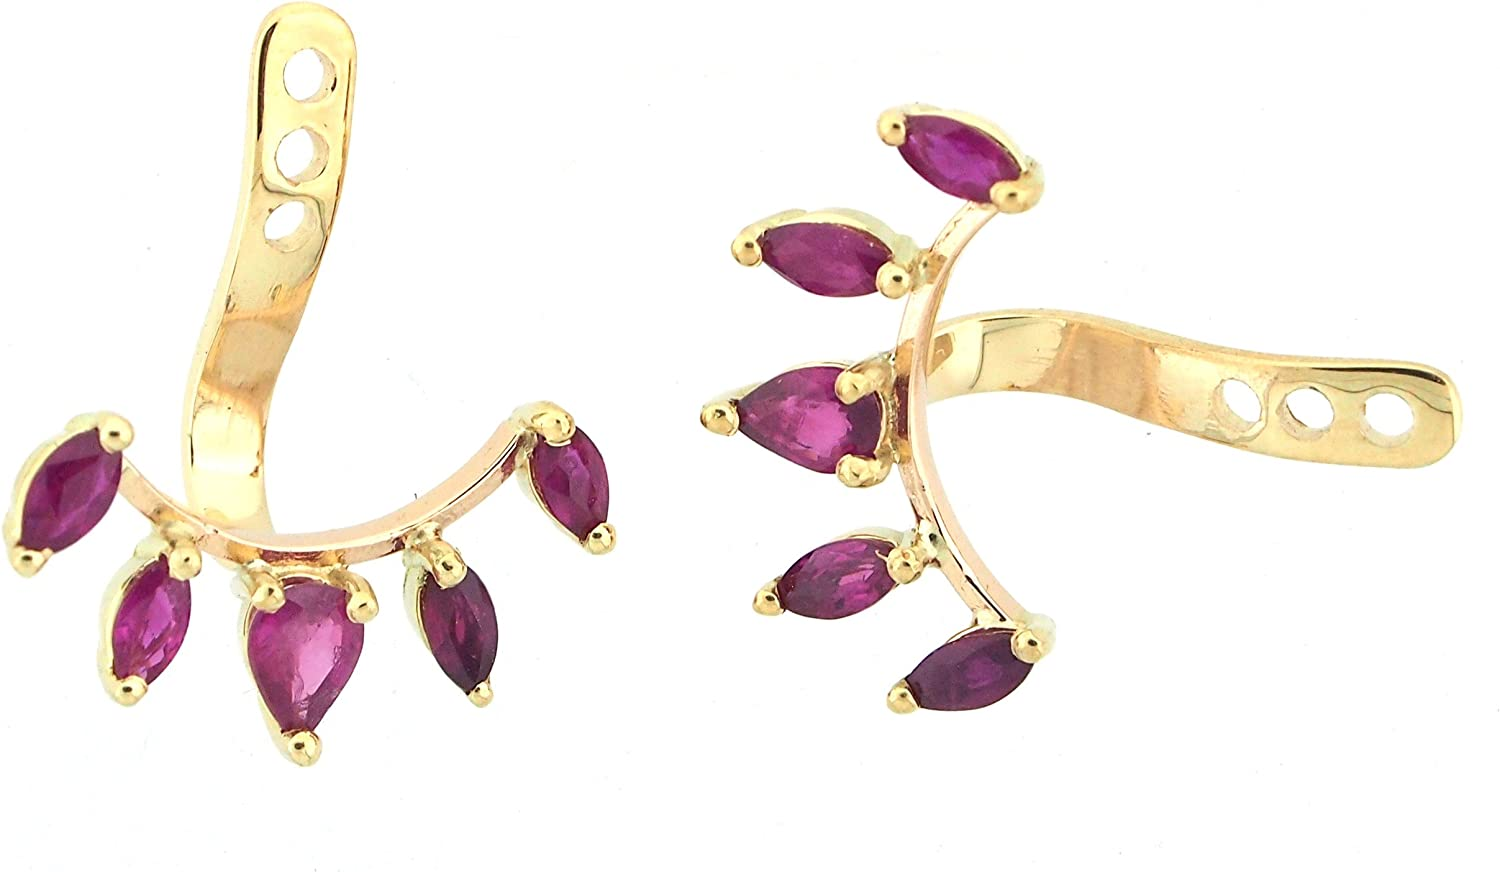 18K Yellow Gold Clip On Earring Jackets Handmade With Natural Rubies